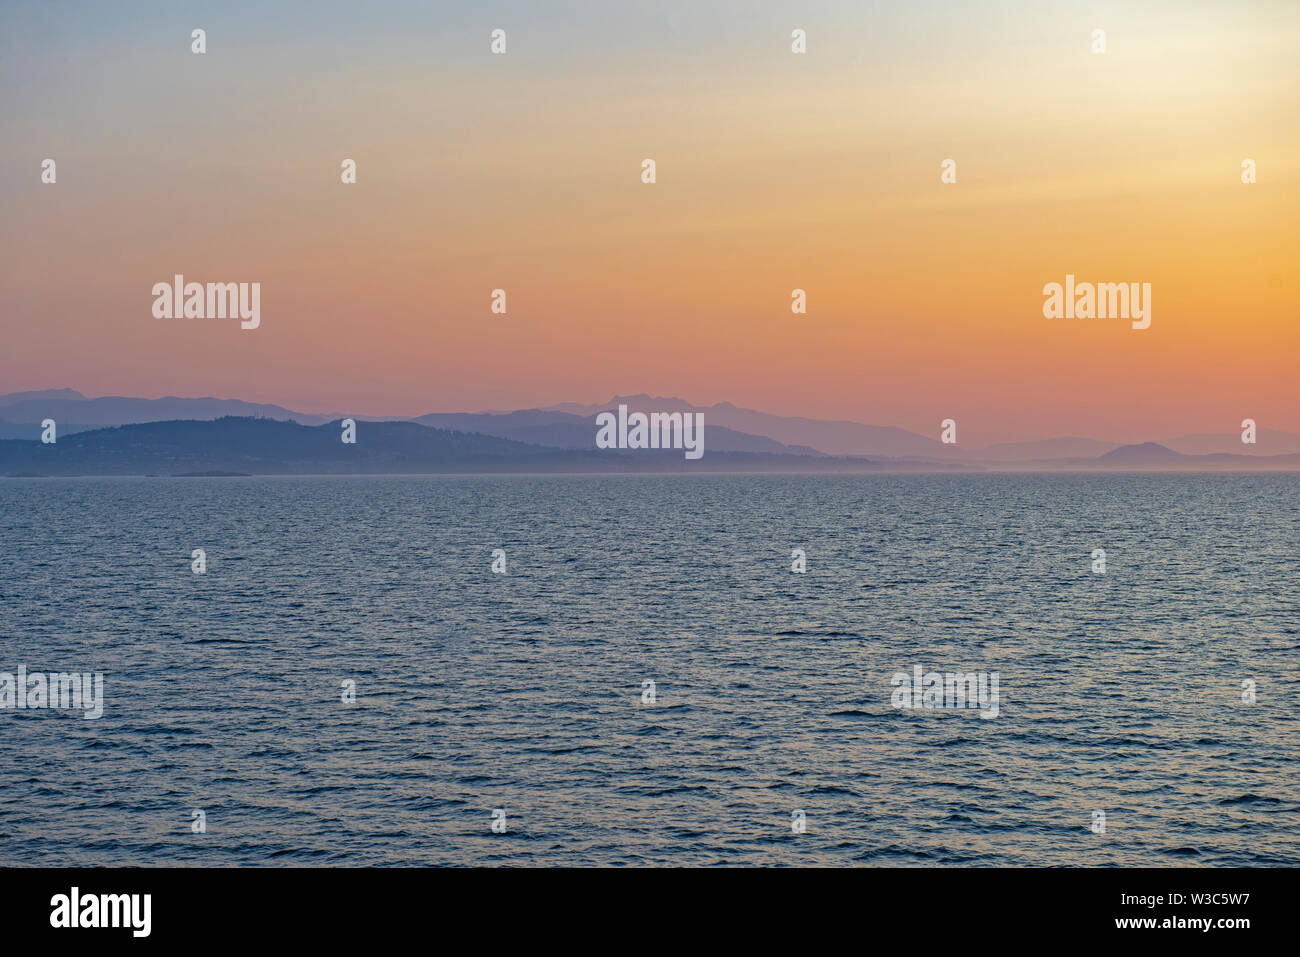 View of the Georgia Strait with the shore of Vancouver Island in the horizon, taken at sunset time in BC, Canada Stock Photo